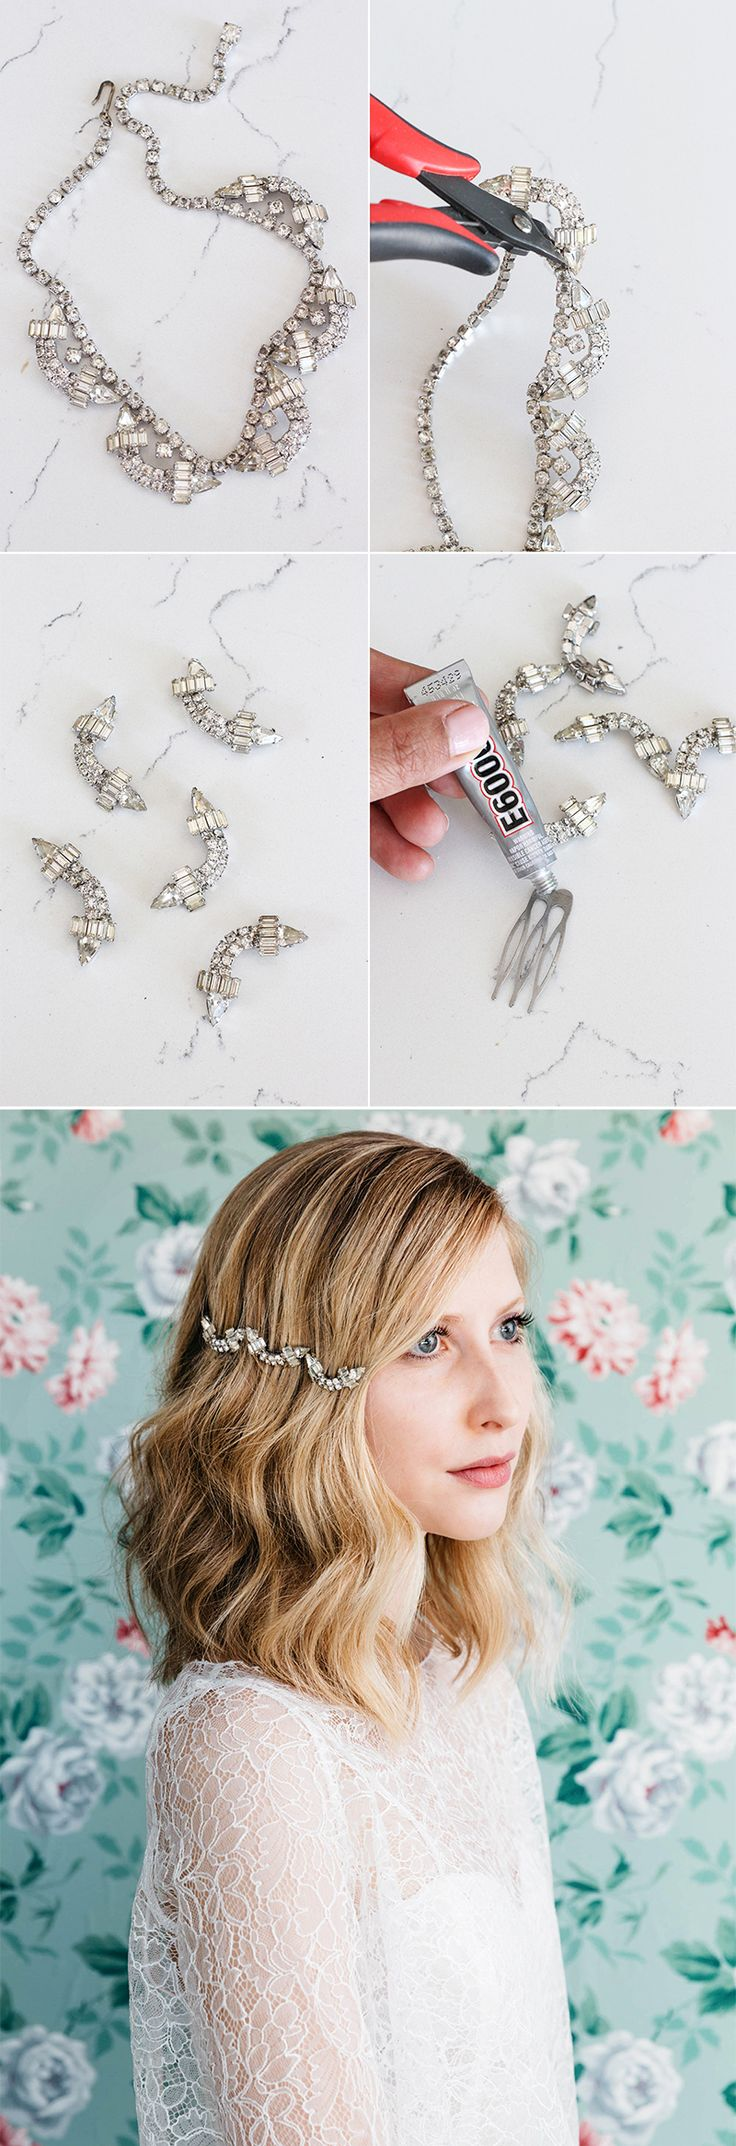 DIY bridal hair accessories using parts from vintage costume jewelry @Etsy